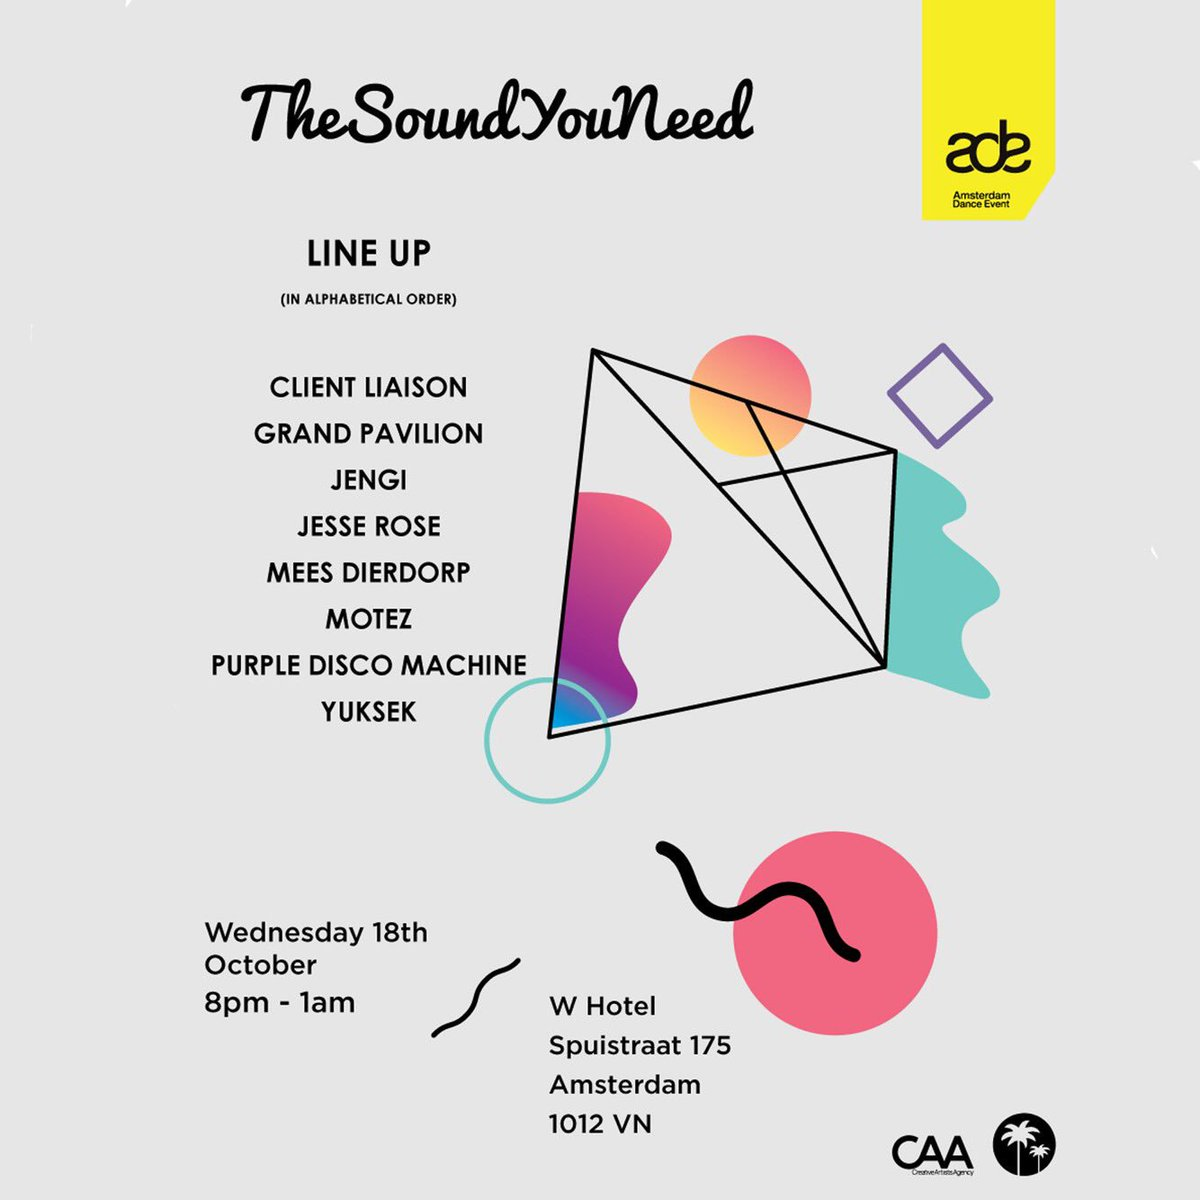 Catch us at @ADE_NL on Wednesday w/ @yuksek, @GrandPavilionAU, @motez_music + more! 🙌🏻   Get on the free guest list: https://t.co/SttXamIcnE https://t.co/6xgSCrddP5